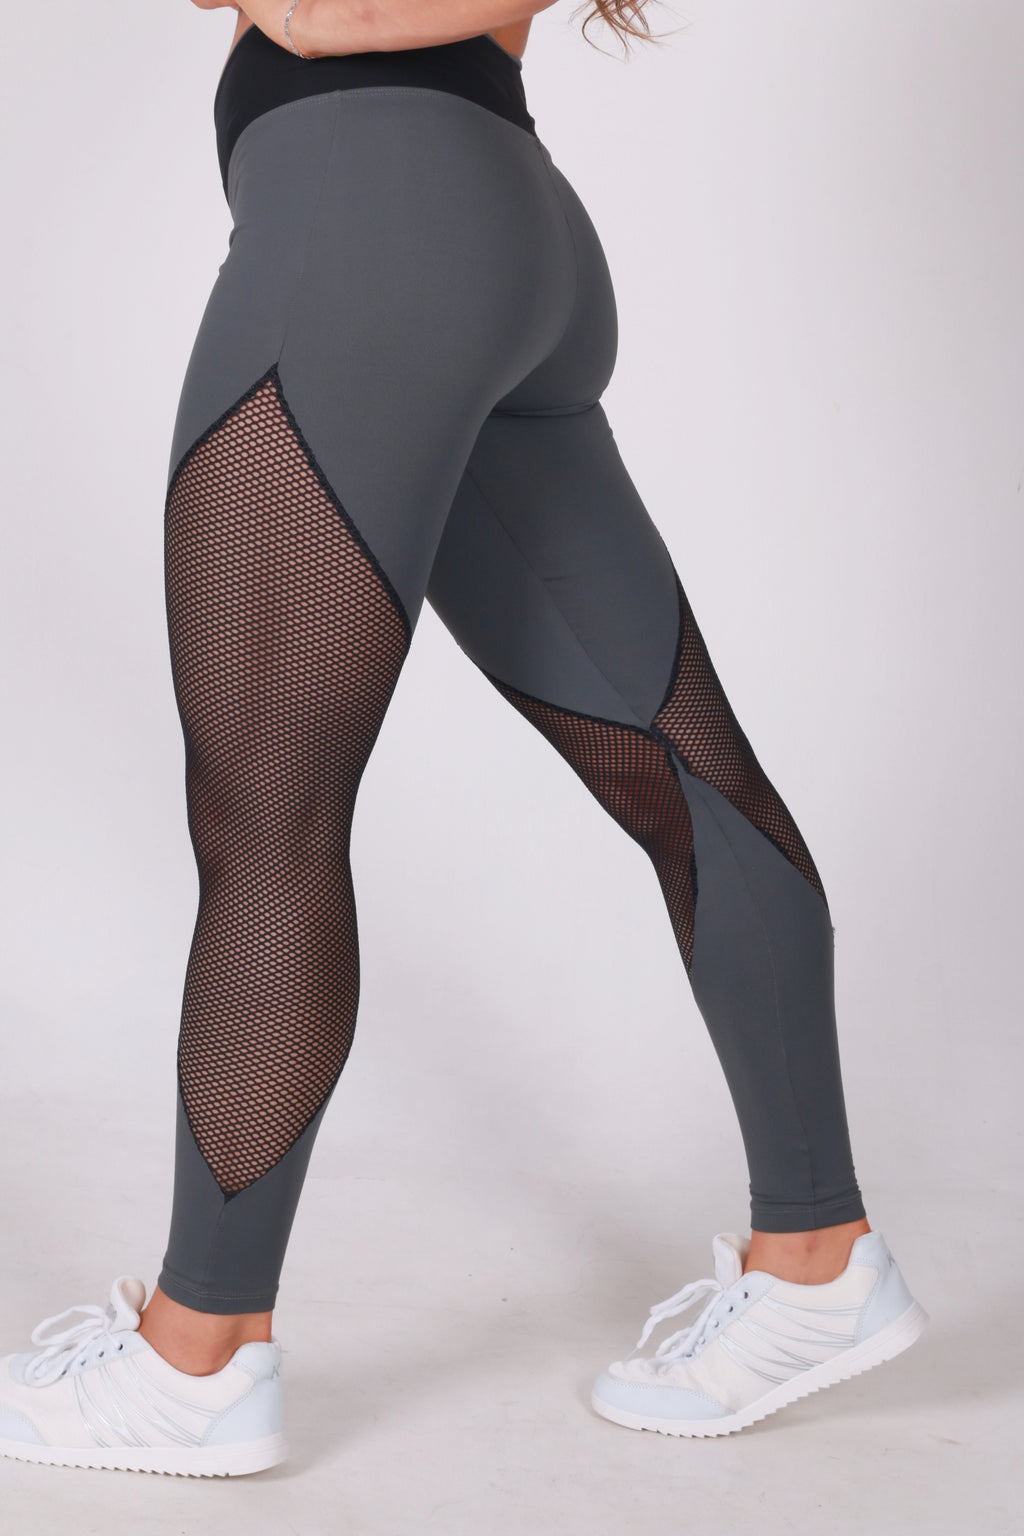 Lovely grey legging with Net